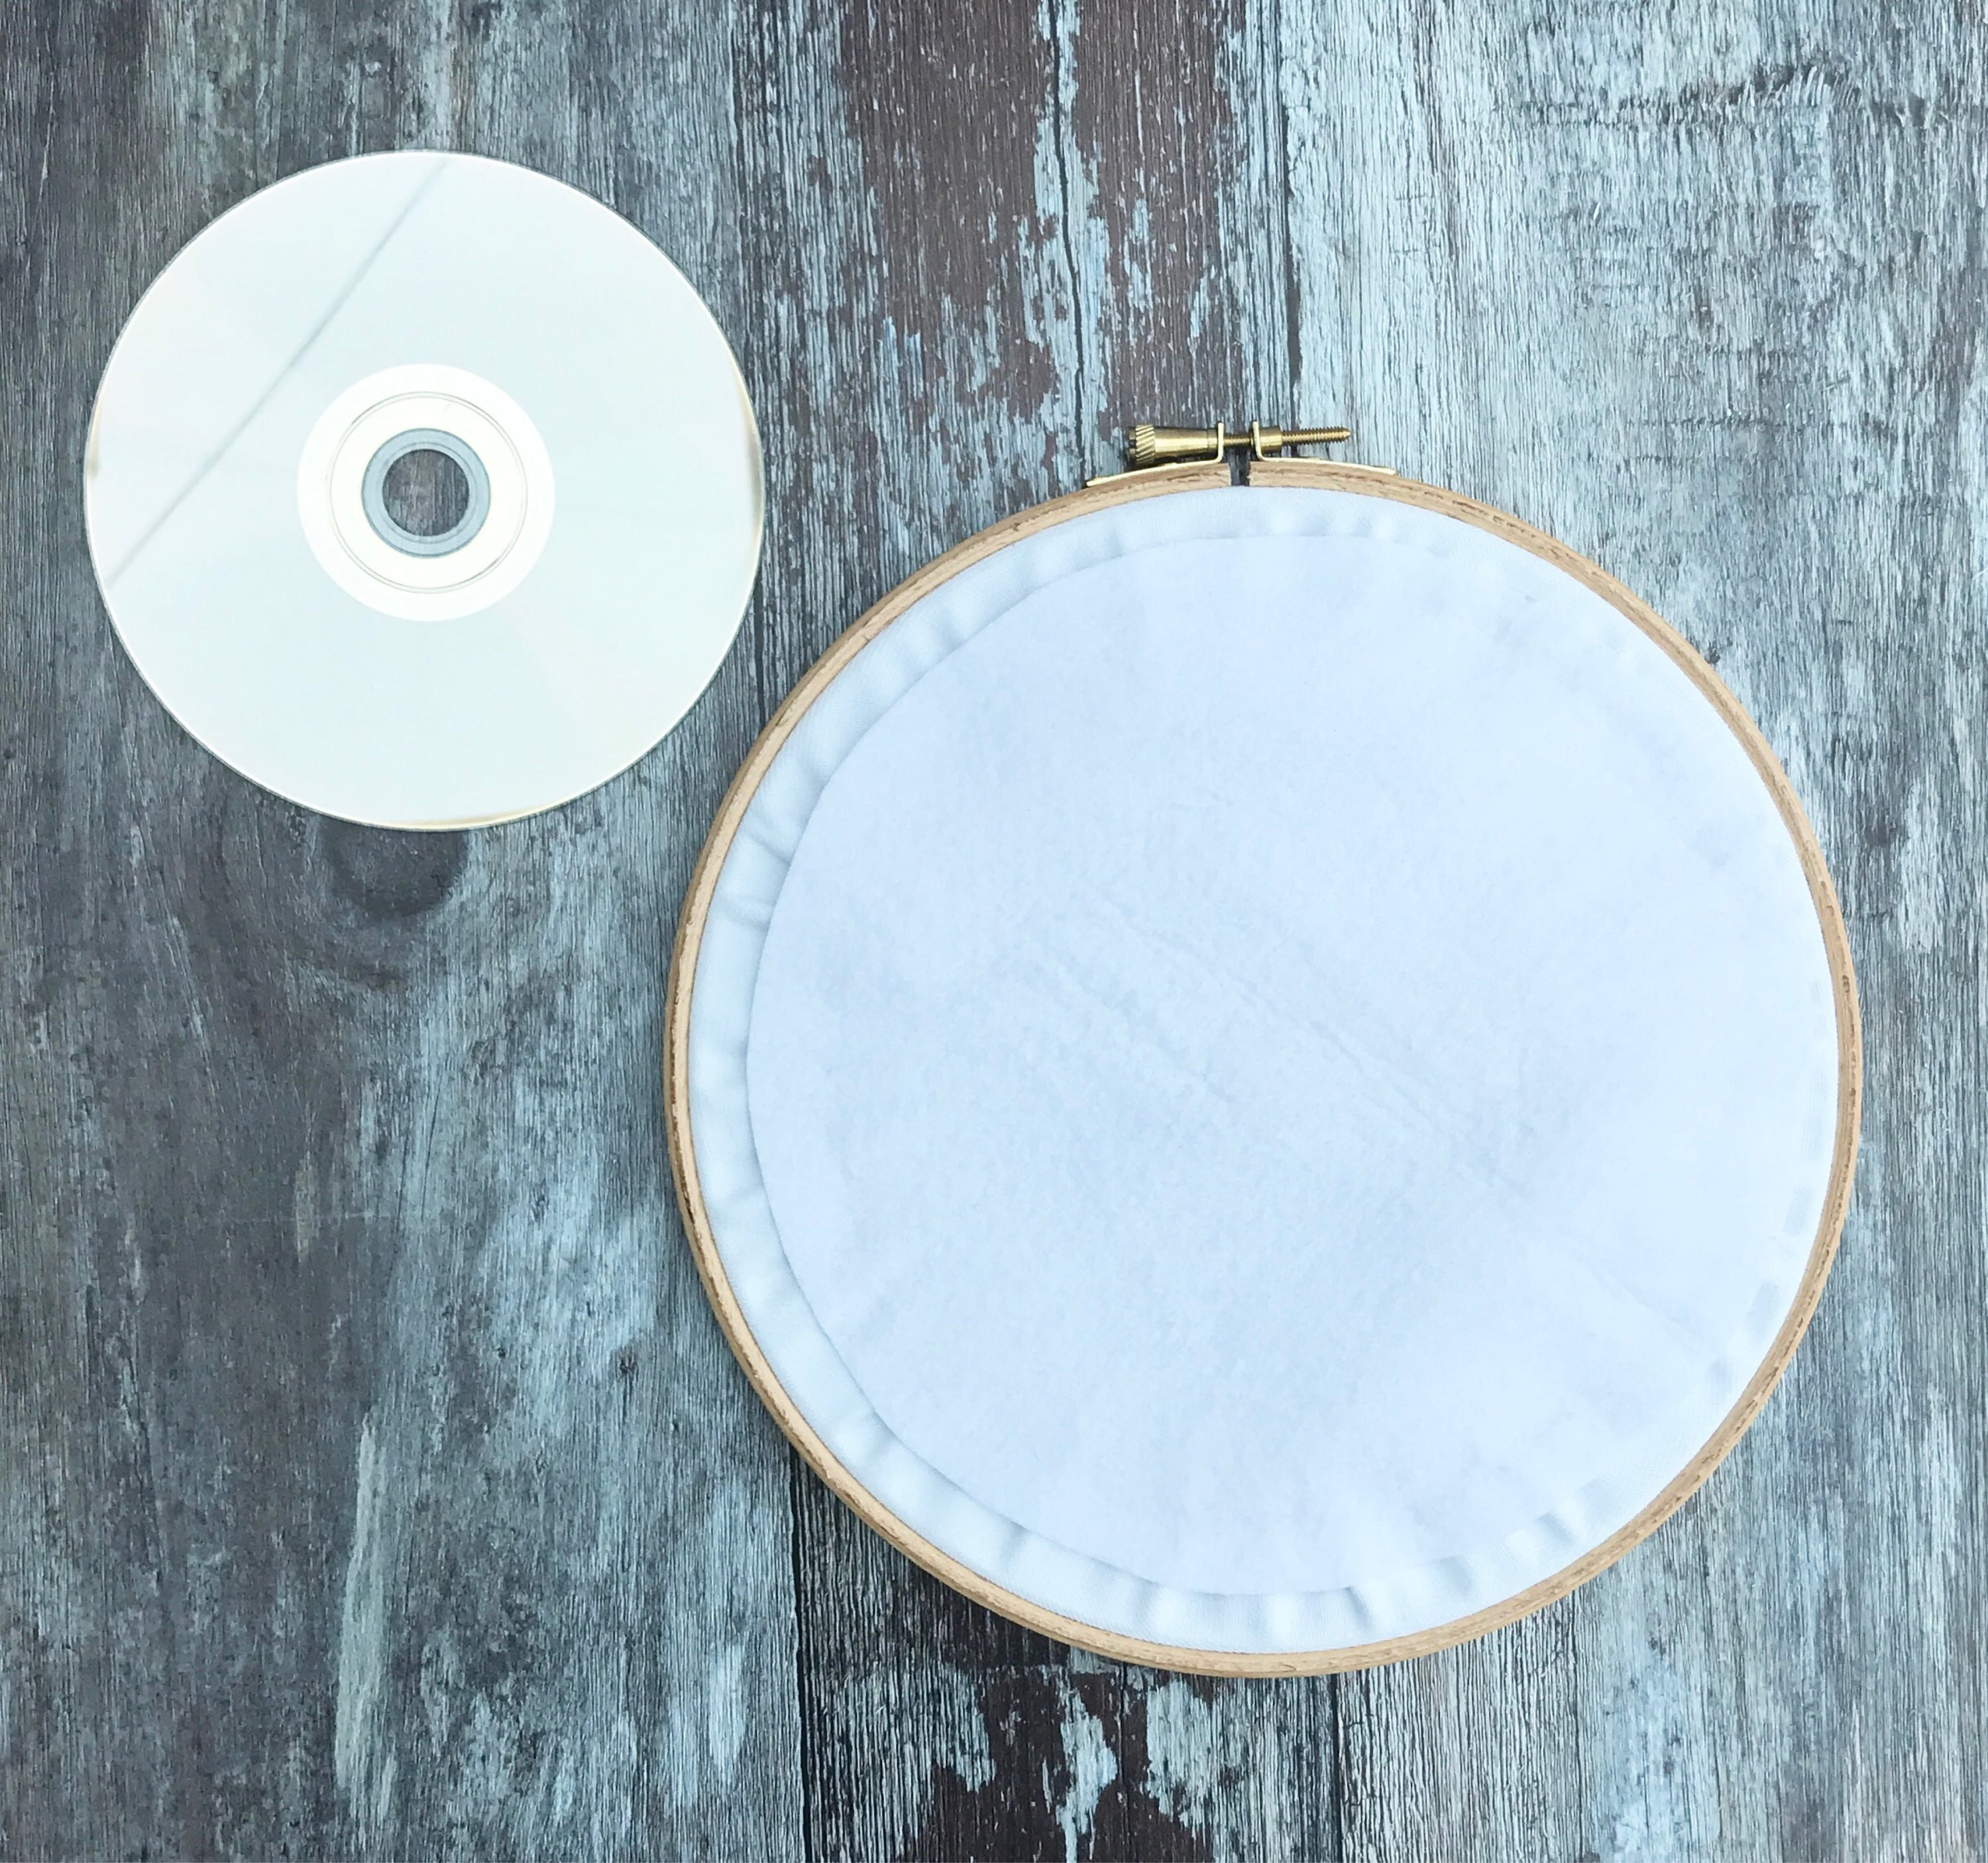 This aint my first rodeo, Embroidery hoop art